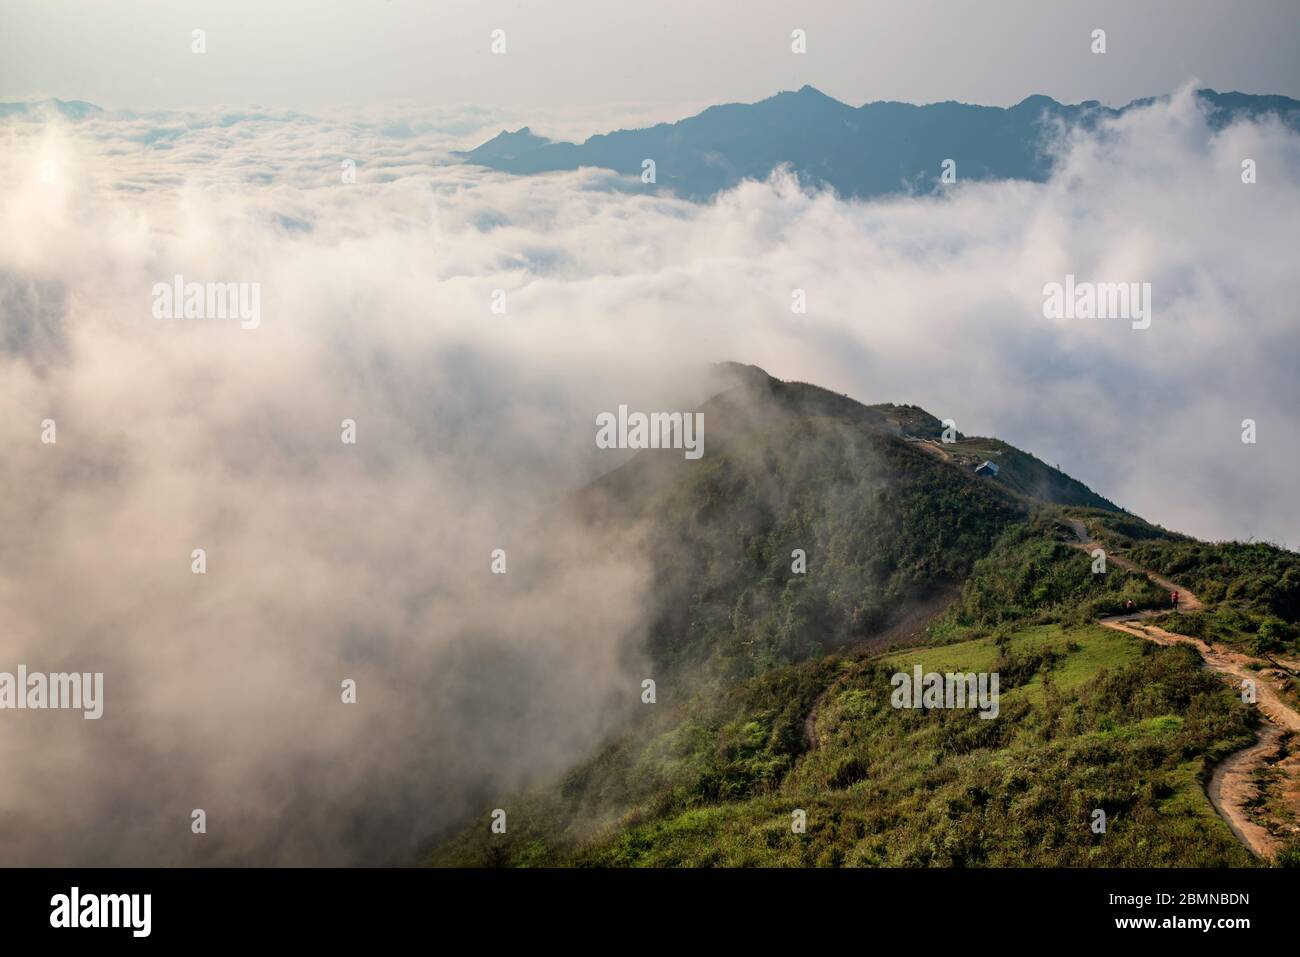 Ta Xua is a famous mountain range in northern Vietnam. All year round, the mountain rises above the clouds creating cloud inversions. Stock Photo